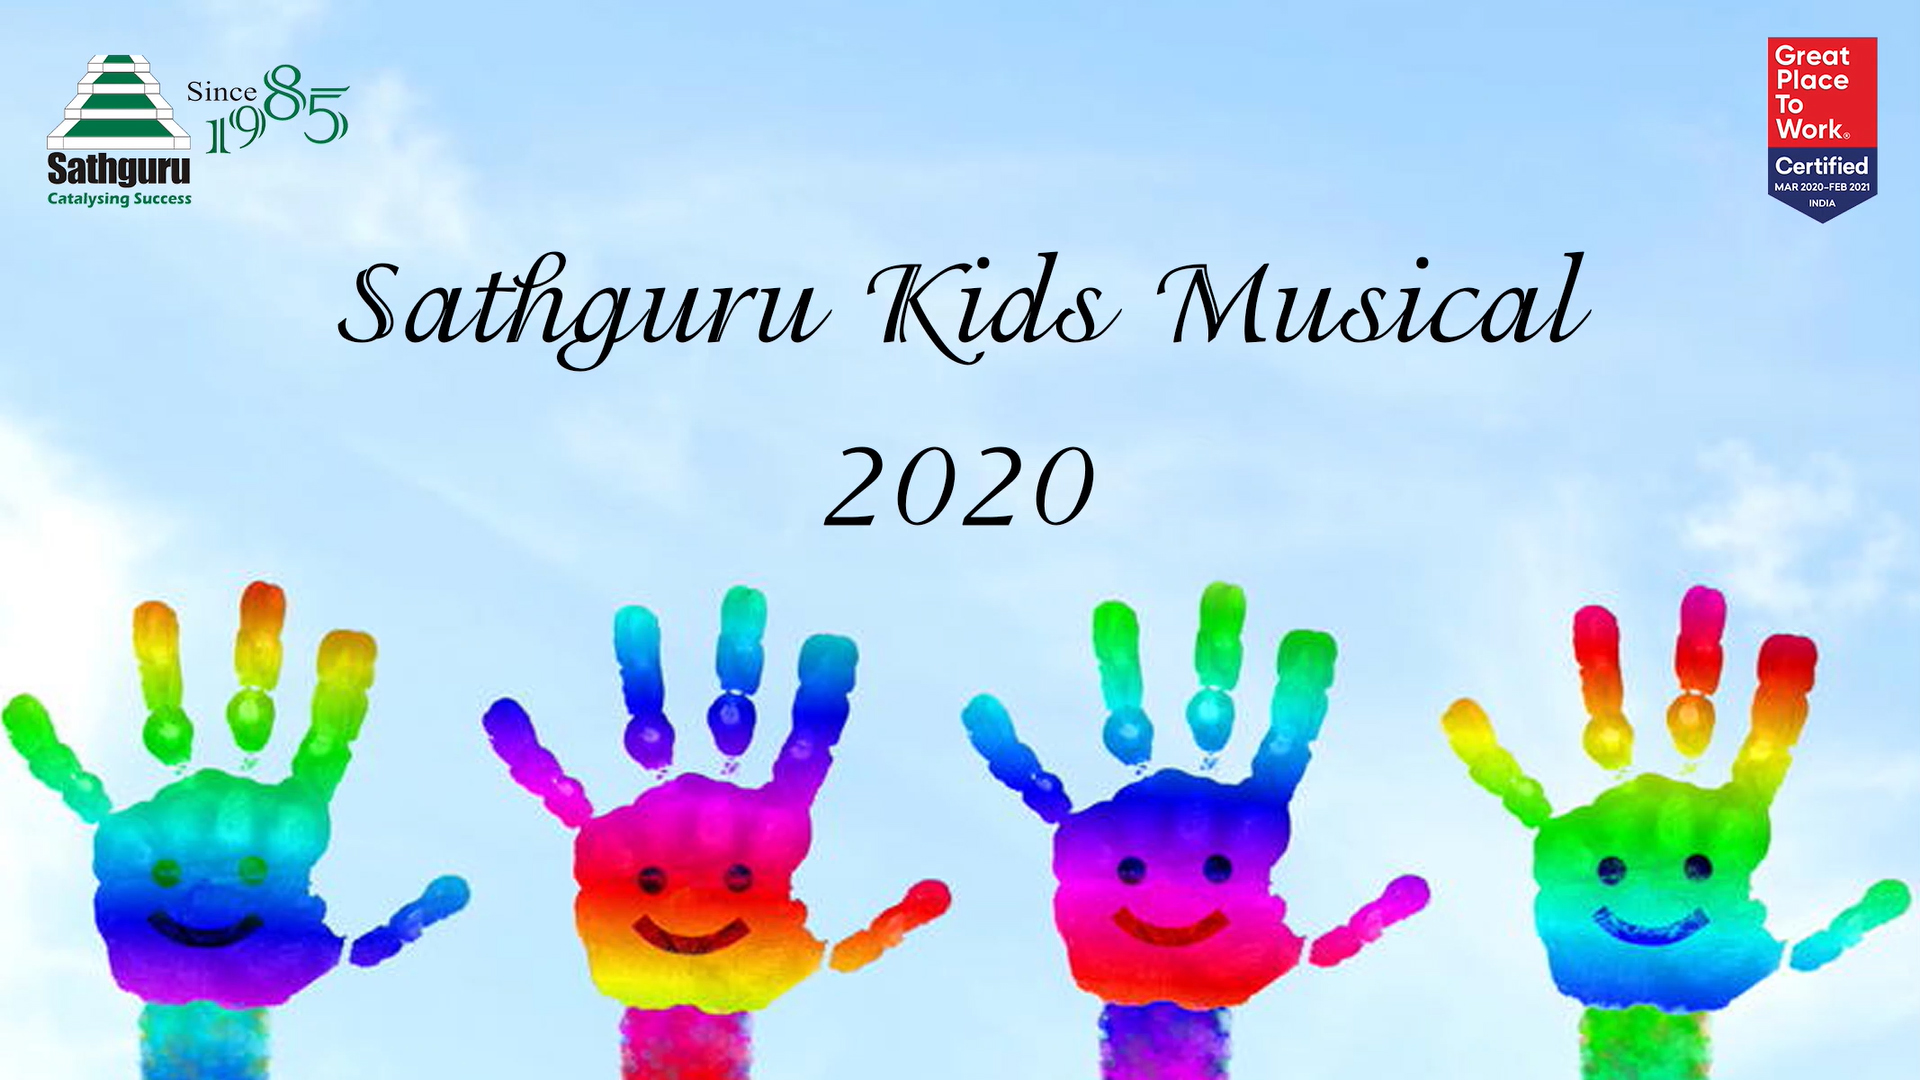 Sathguru Kids Musical